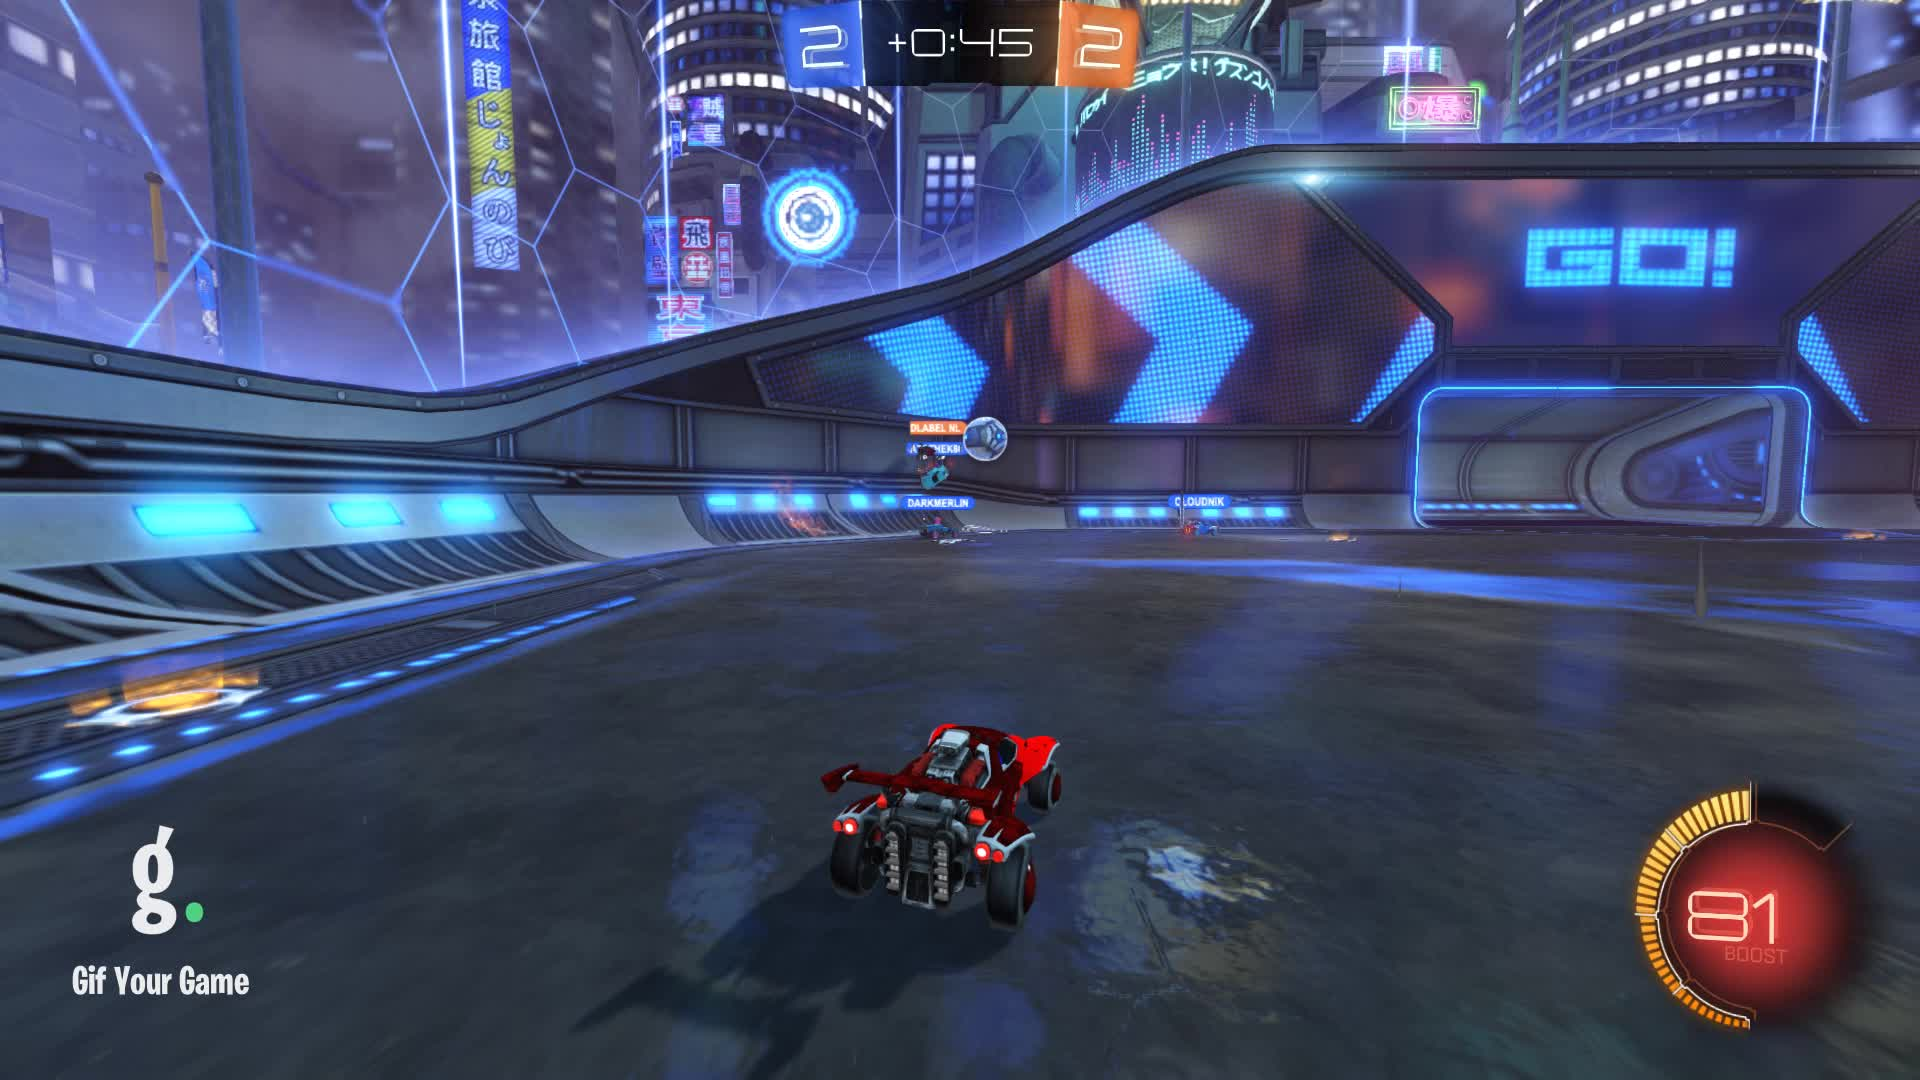 Gif Your Game, GifYourGame, Goal, Rocket League, RocketLeague, Shadow2801, Goal 5: Redlabel nl GIFs